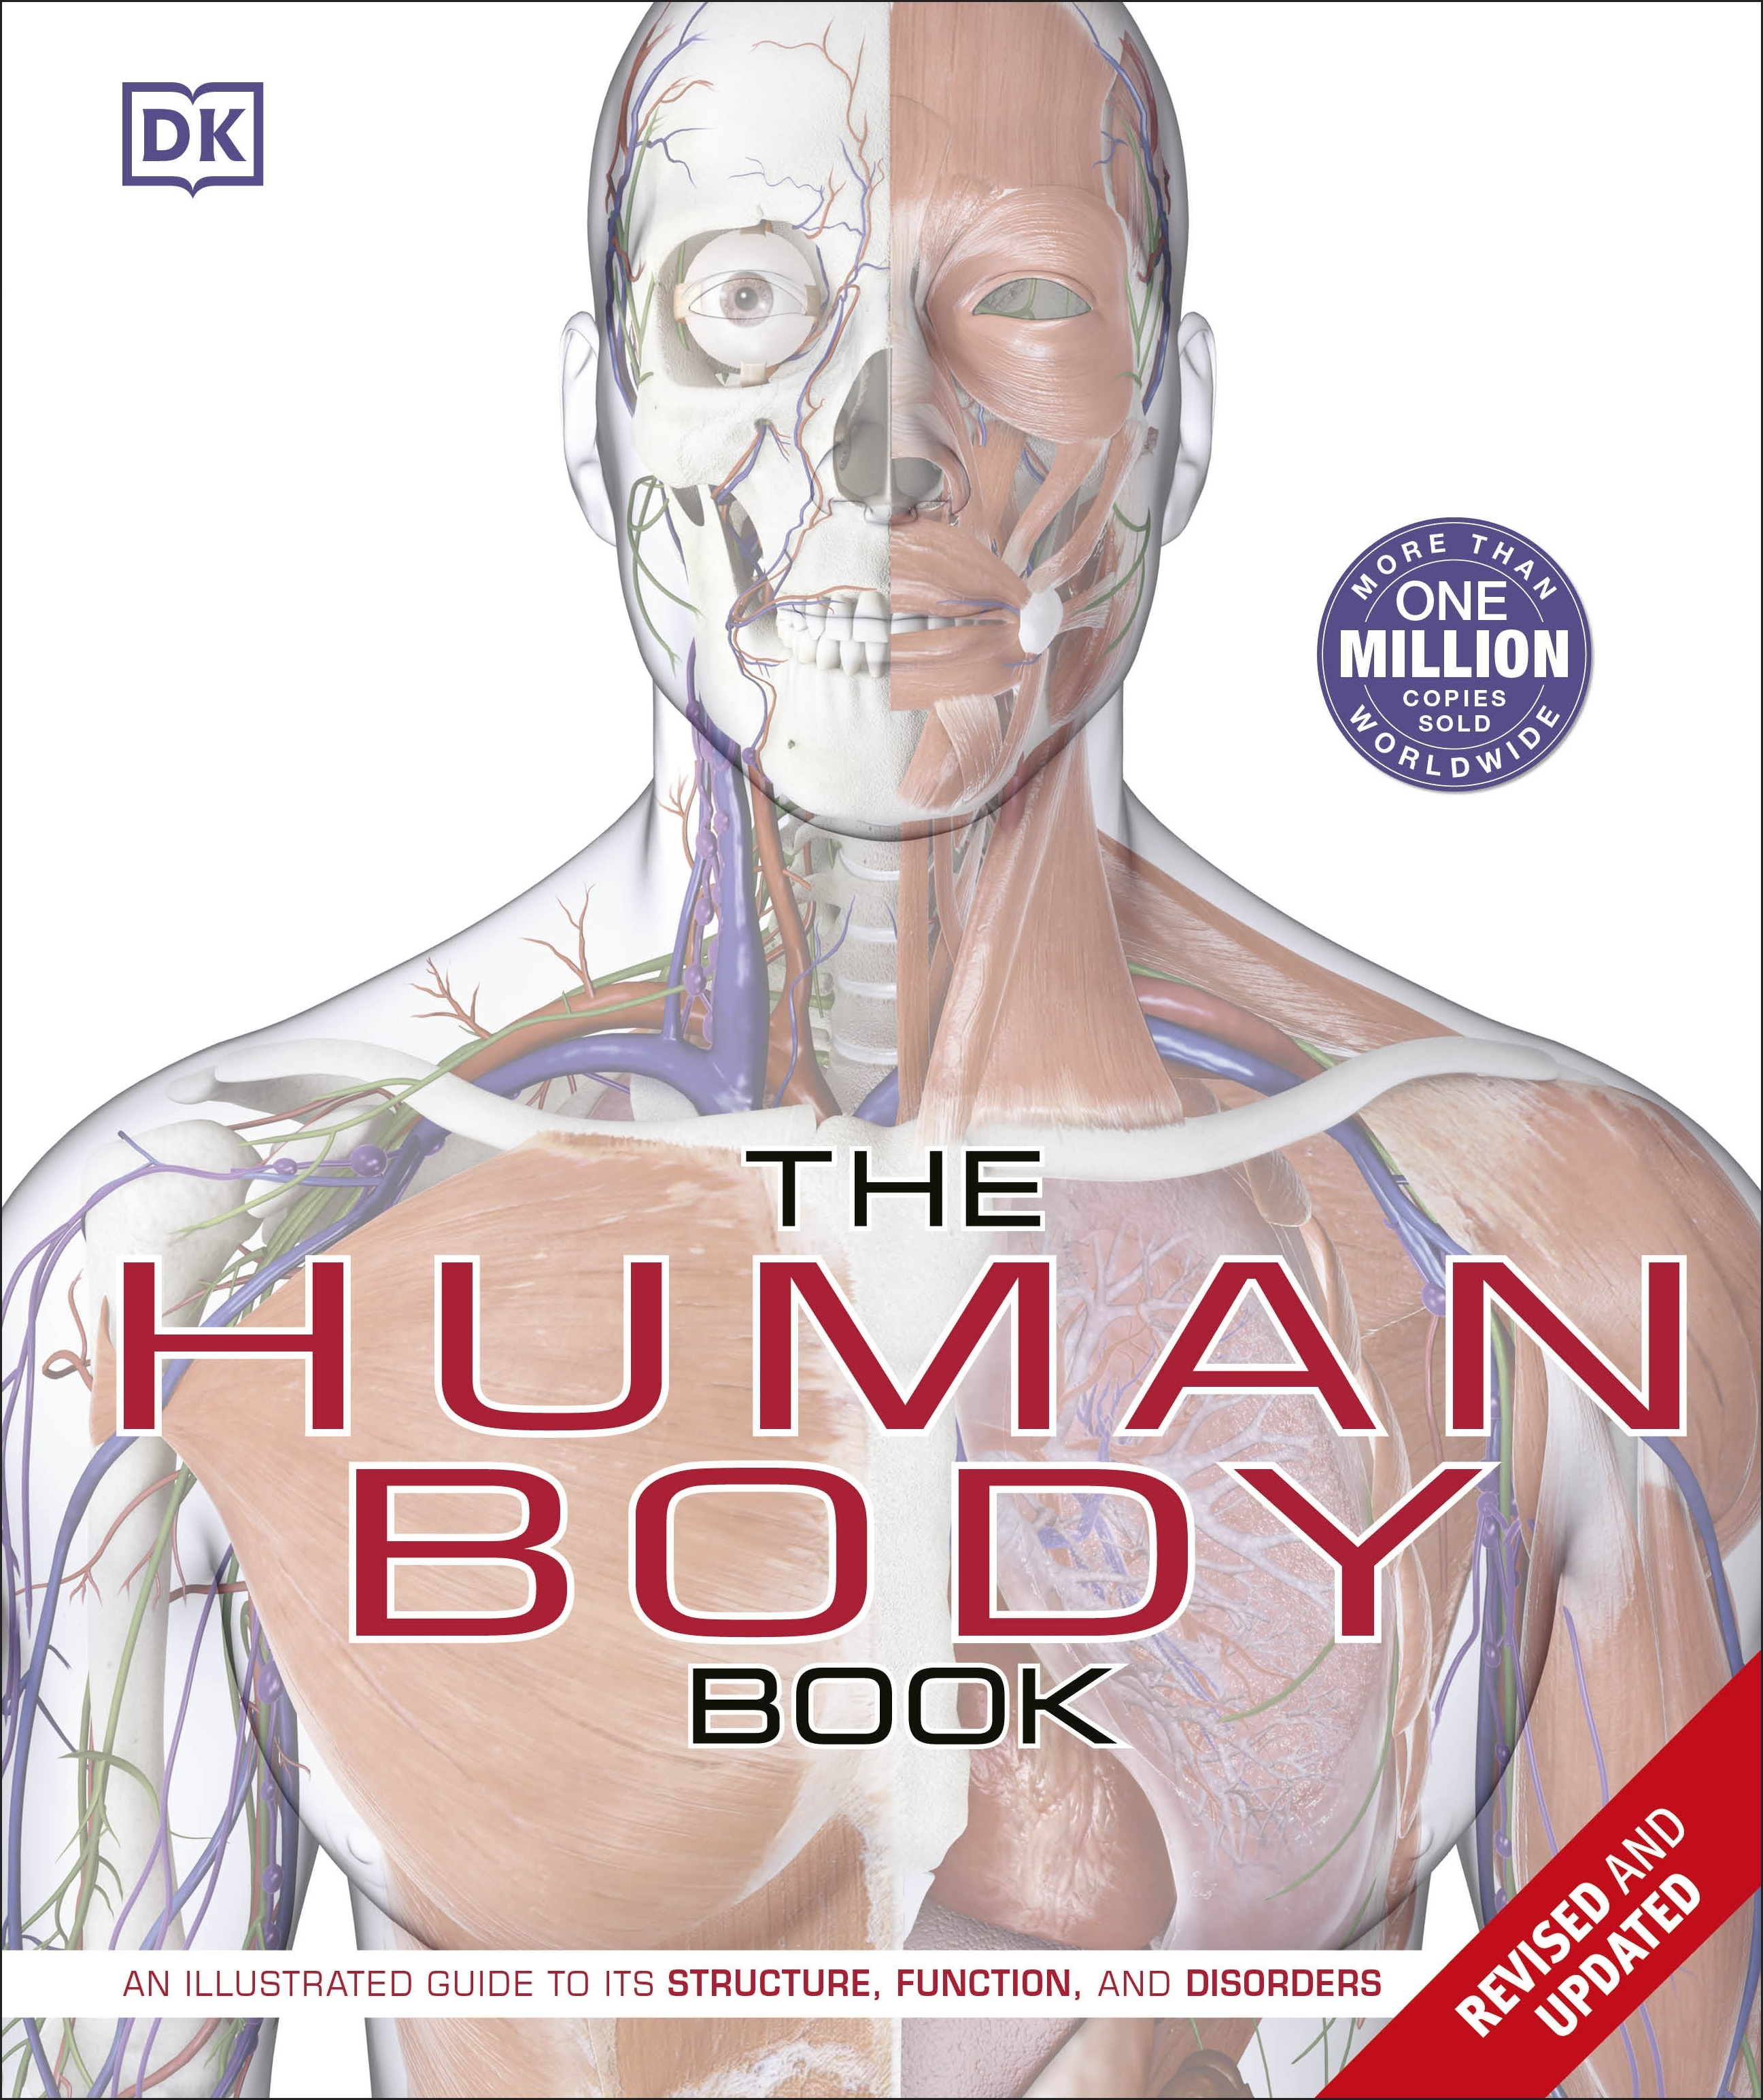 The Human Body Book By Dk Penguin Books New Zealand